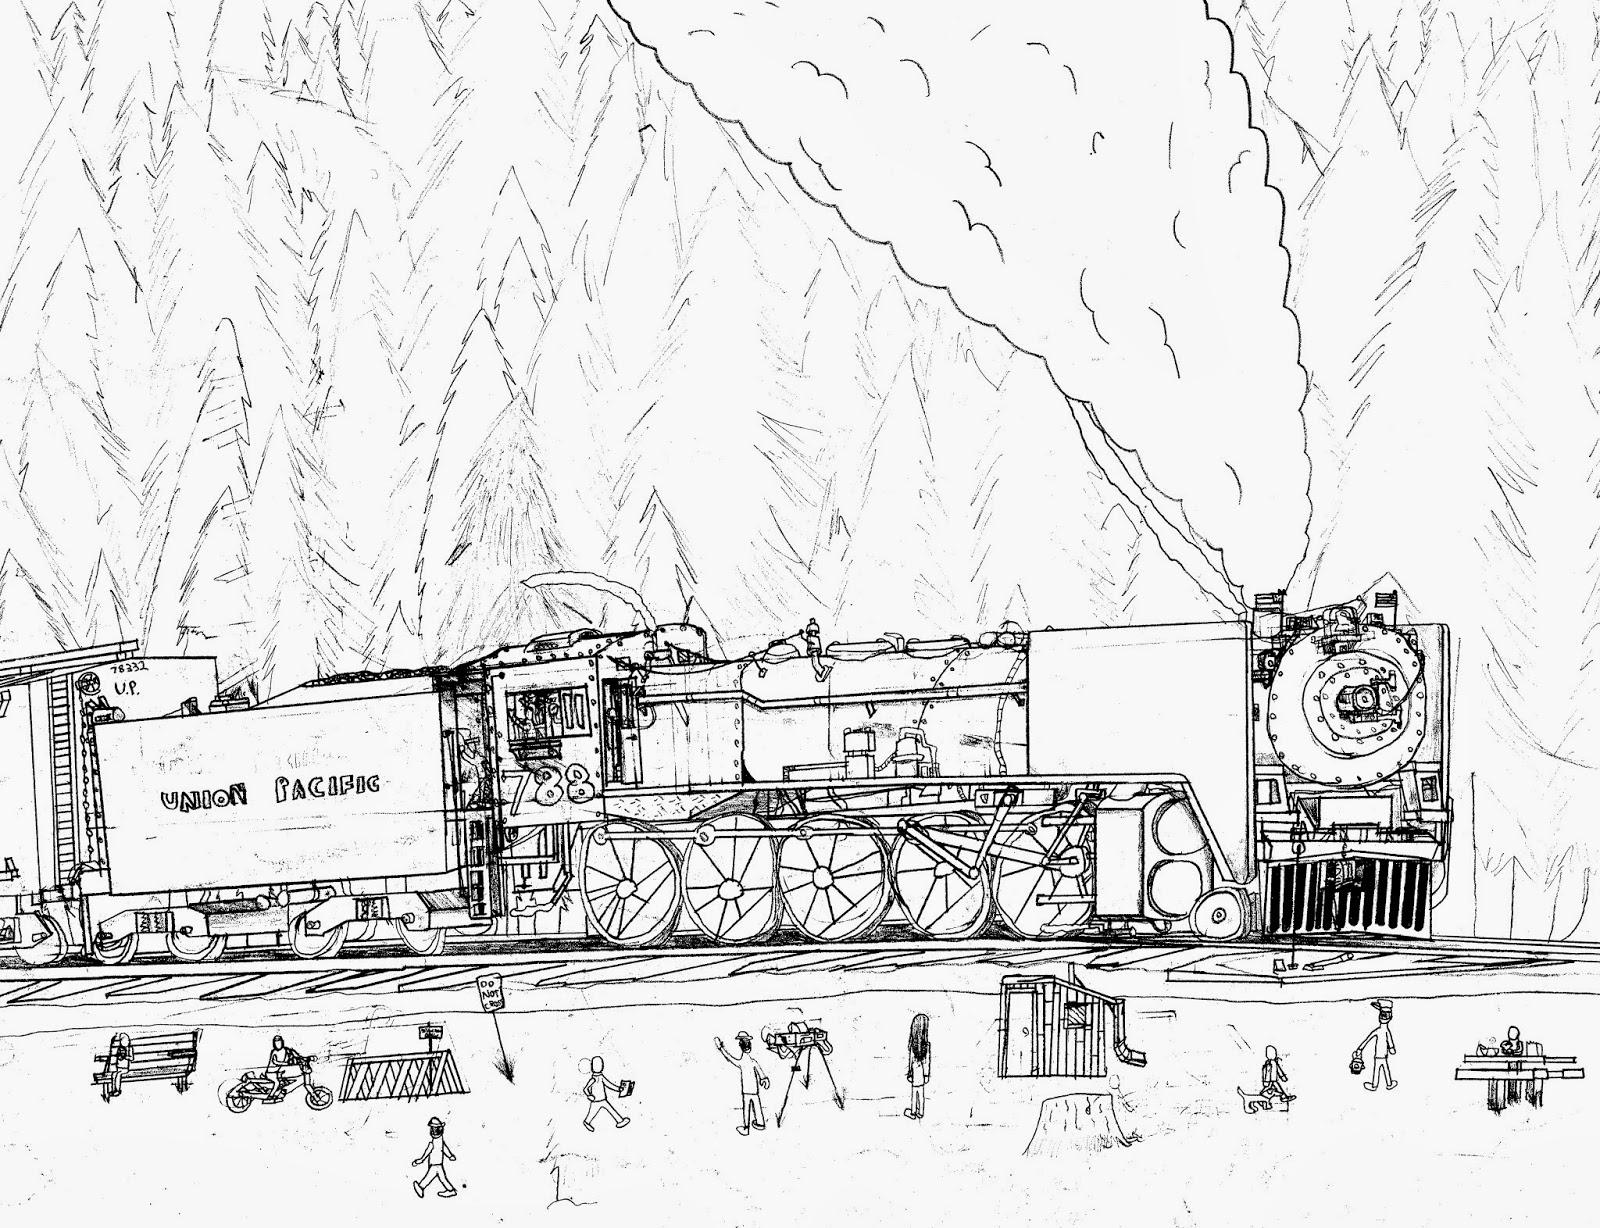 union pacific freight engines